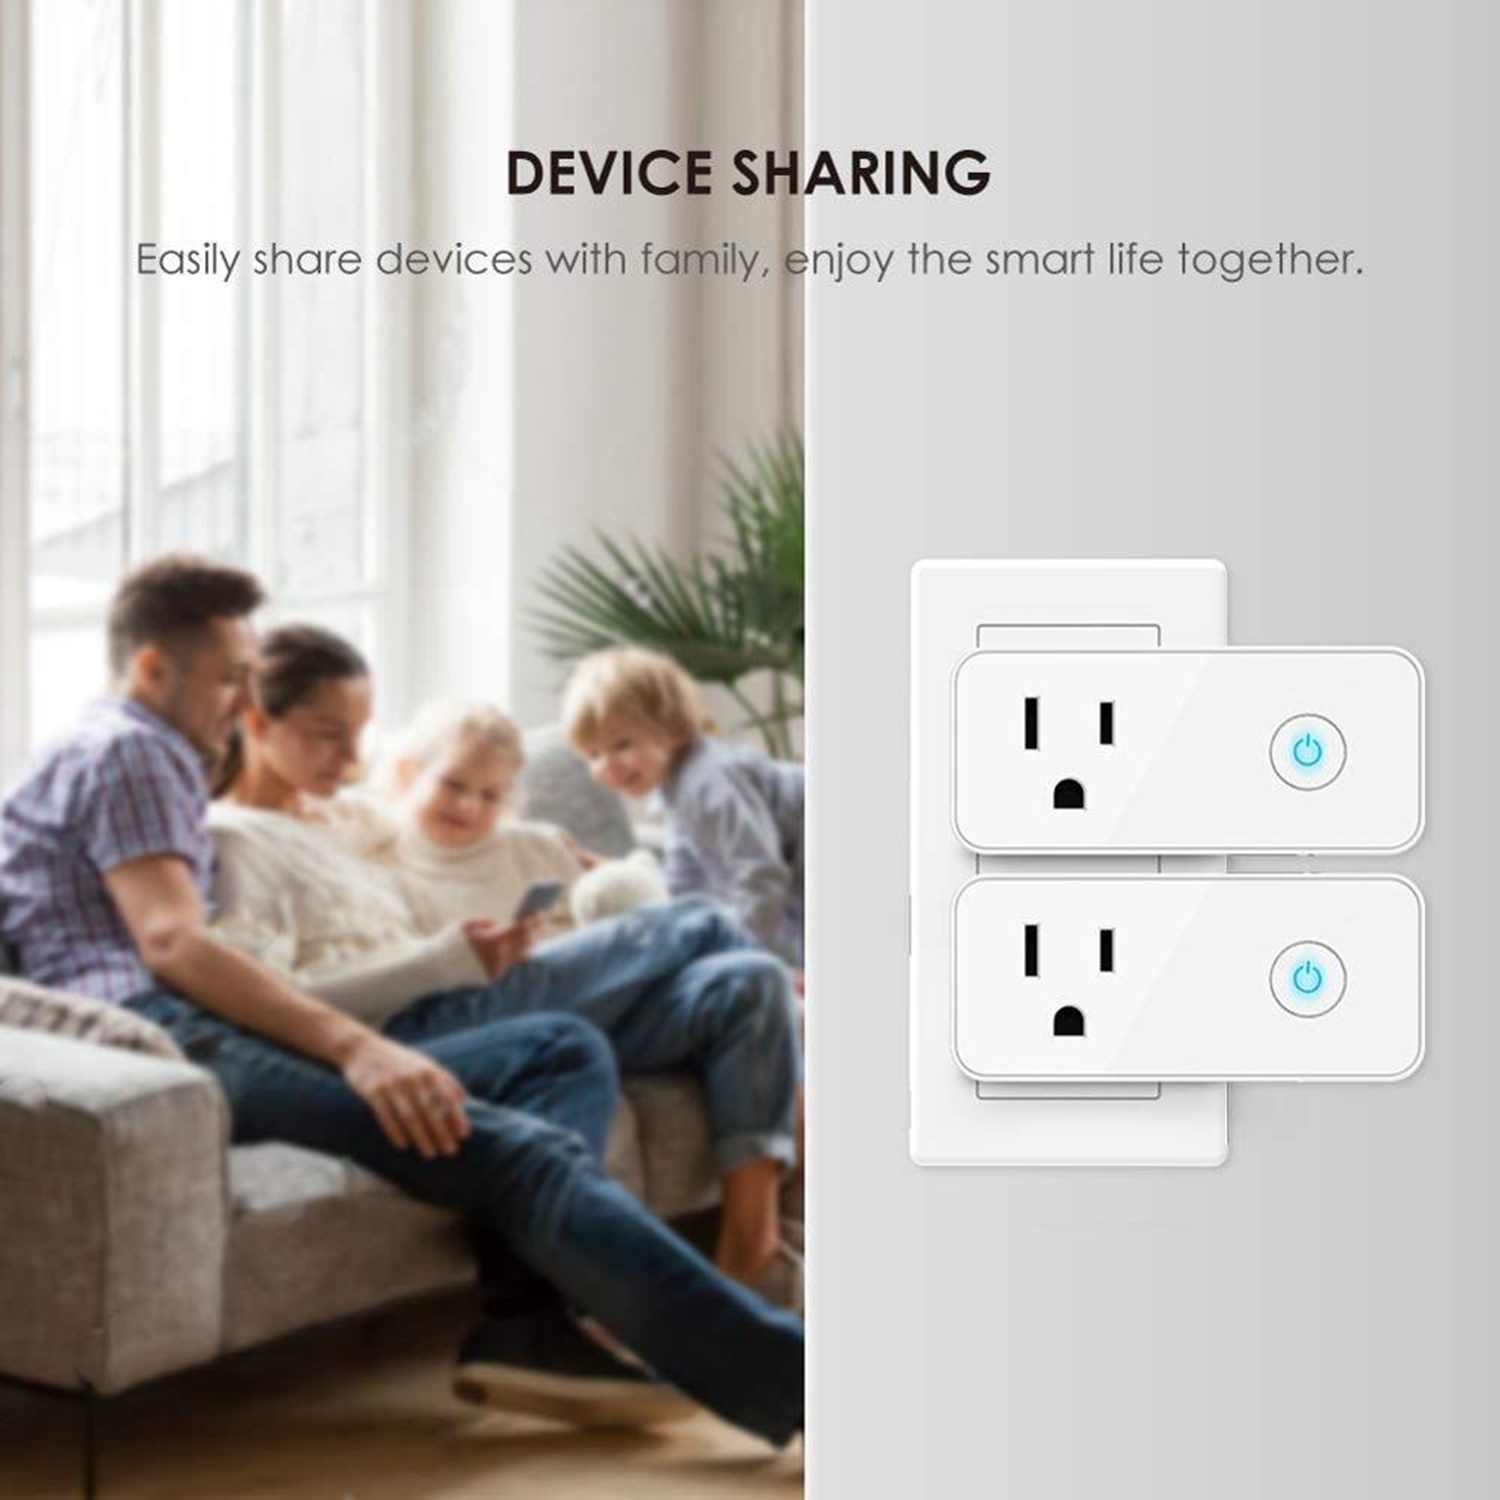 16A Wireless home elektrische wifi smart stecker mit USB steckdose